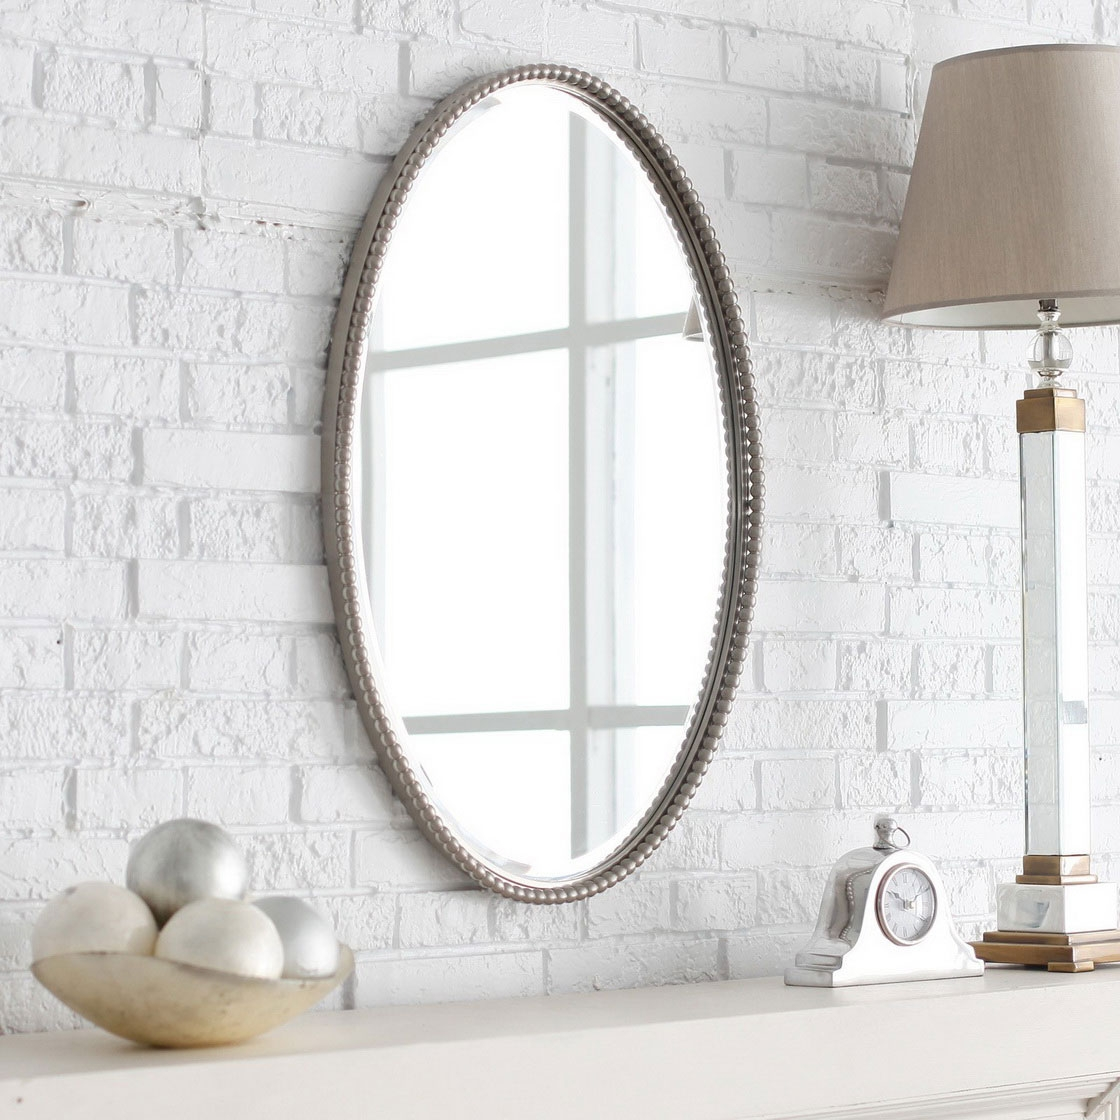 Bathroom Mirrors Luxury Bathroom Mirrors Oval Shape 12 In With Regarding Antique Bathroom Mirrors (View 6 of 15)